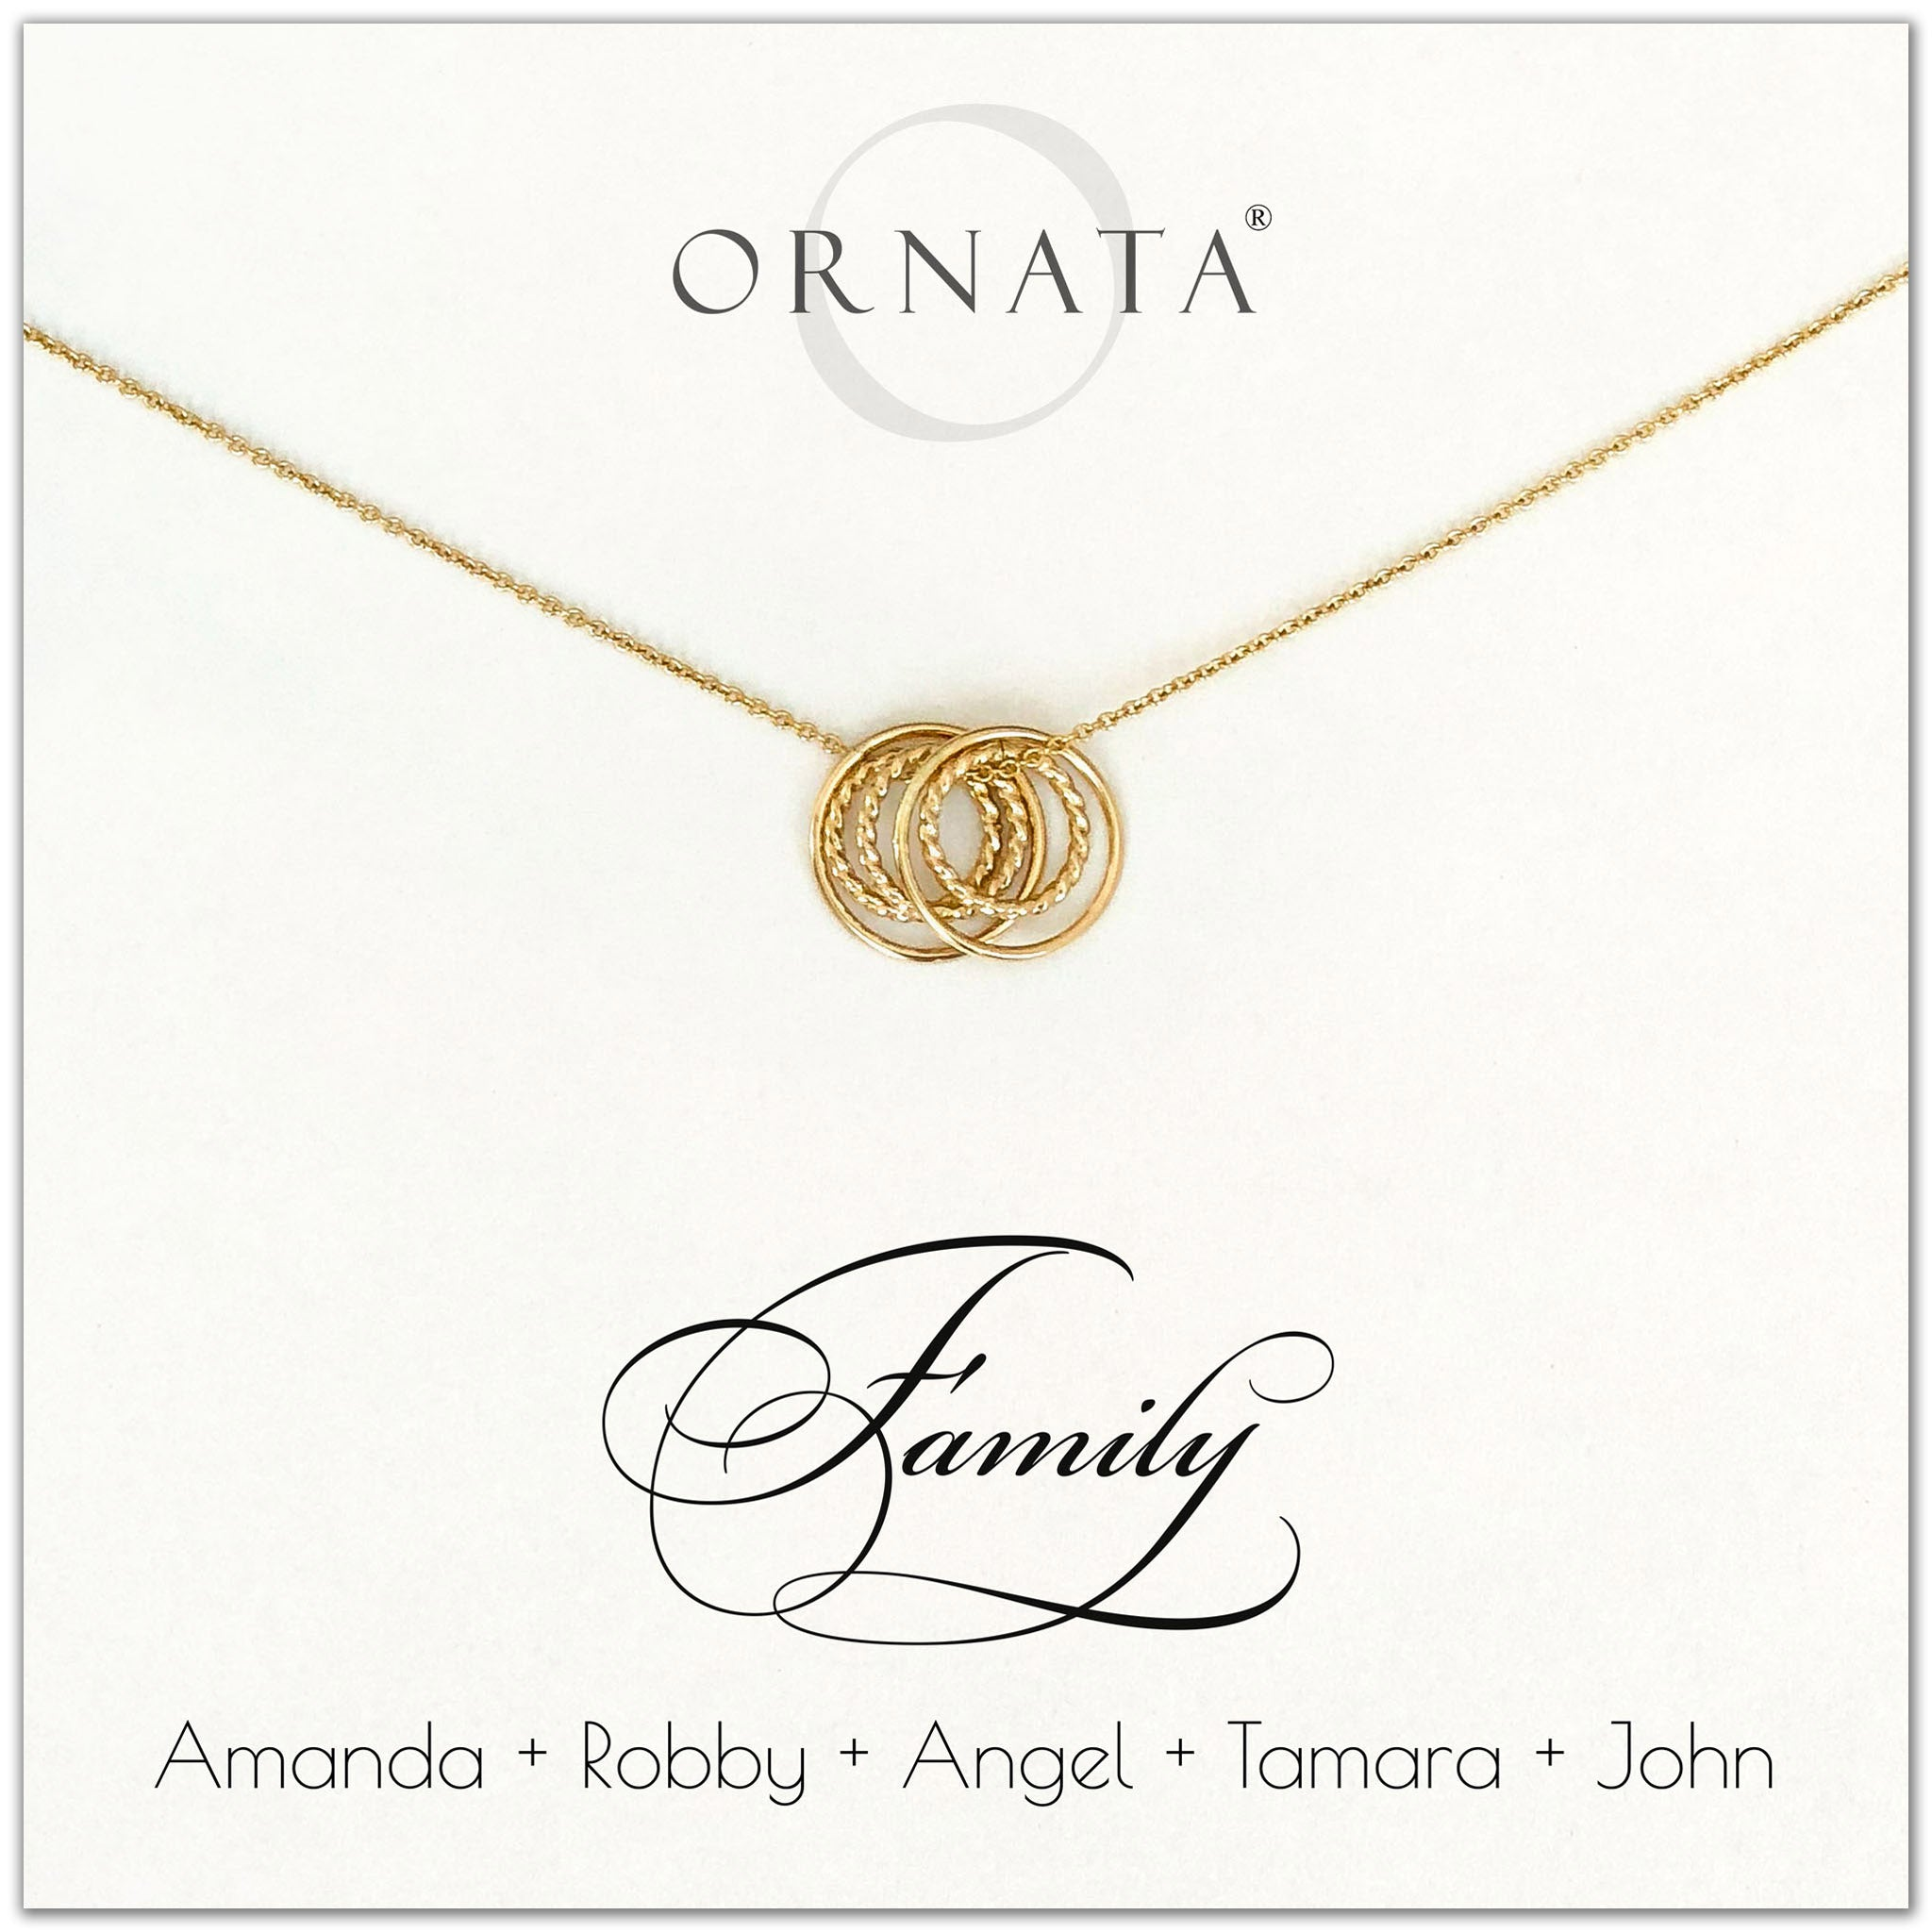 Family of Five Personalized gold necklaces for families of 5. Our 14 karat gold filled custom jewelry is a perfect gift for new families, newlyweds, parents, new parents, friends, sisters, mothers, and grandmothers. Family jewelry is also a good gift for Mother's Day.